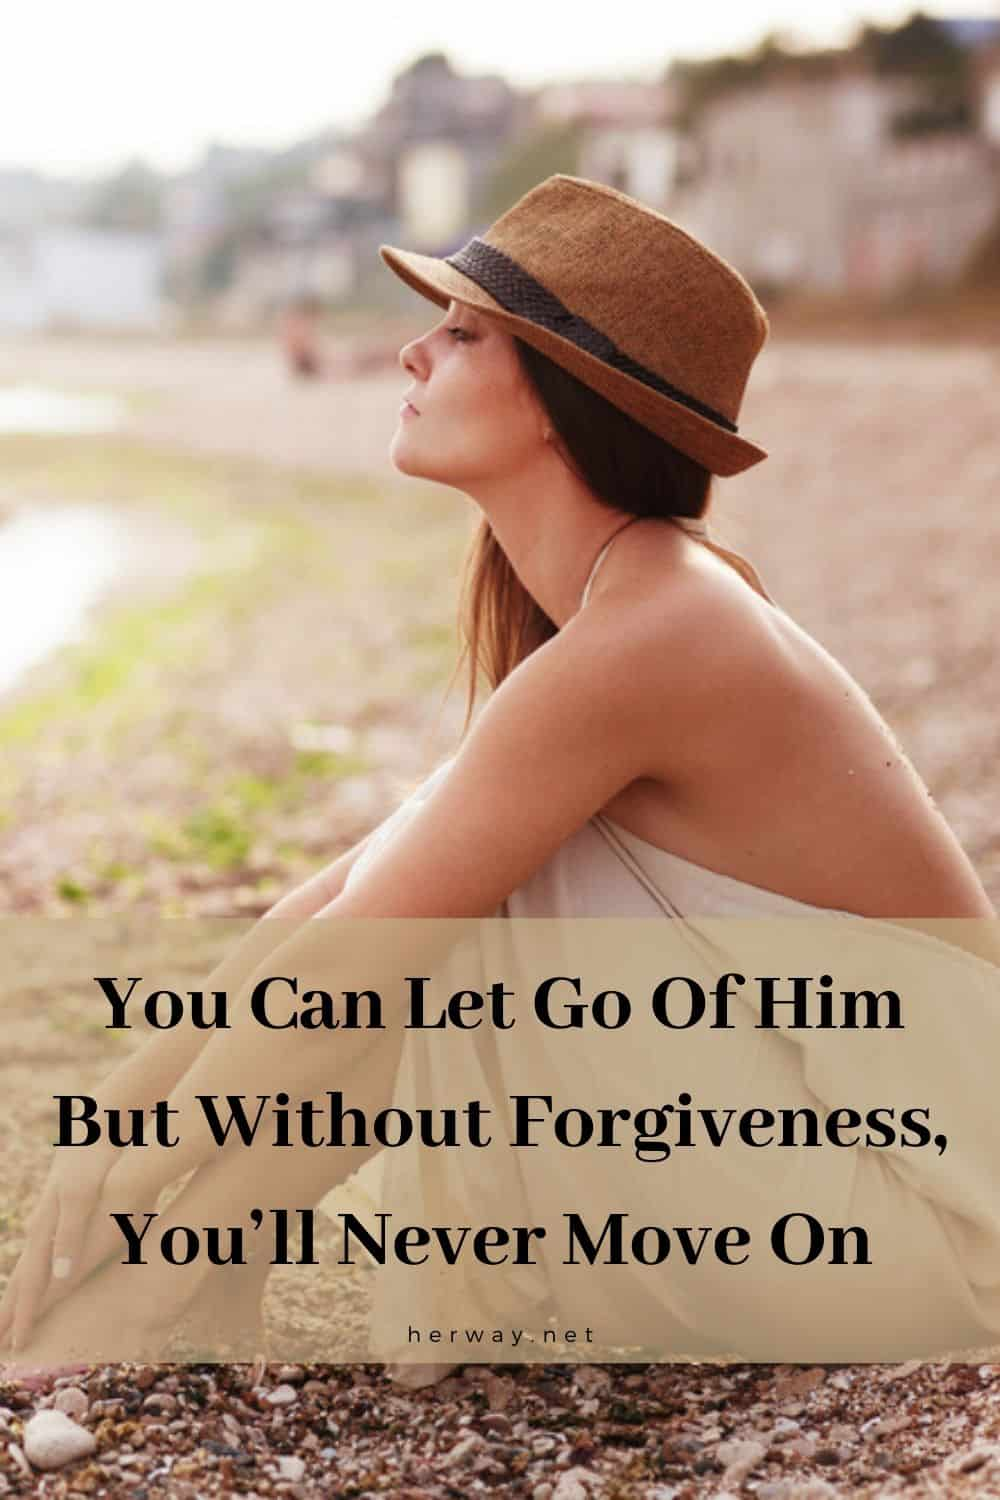 You Can Let Go Of Him But Without Forgiveness, You'll Never Move On